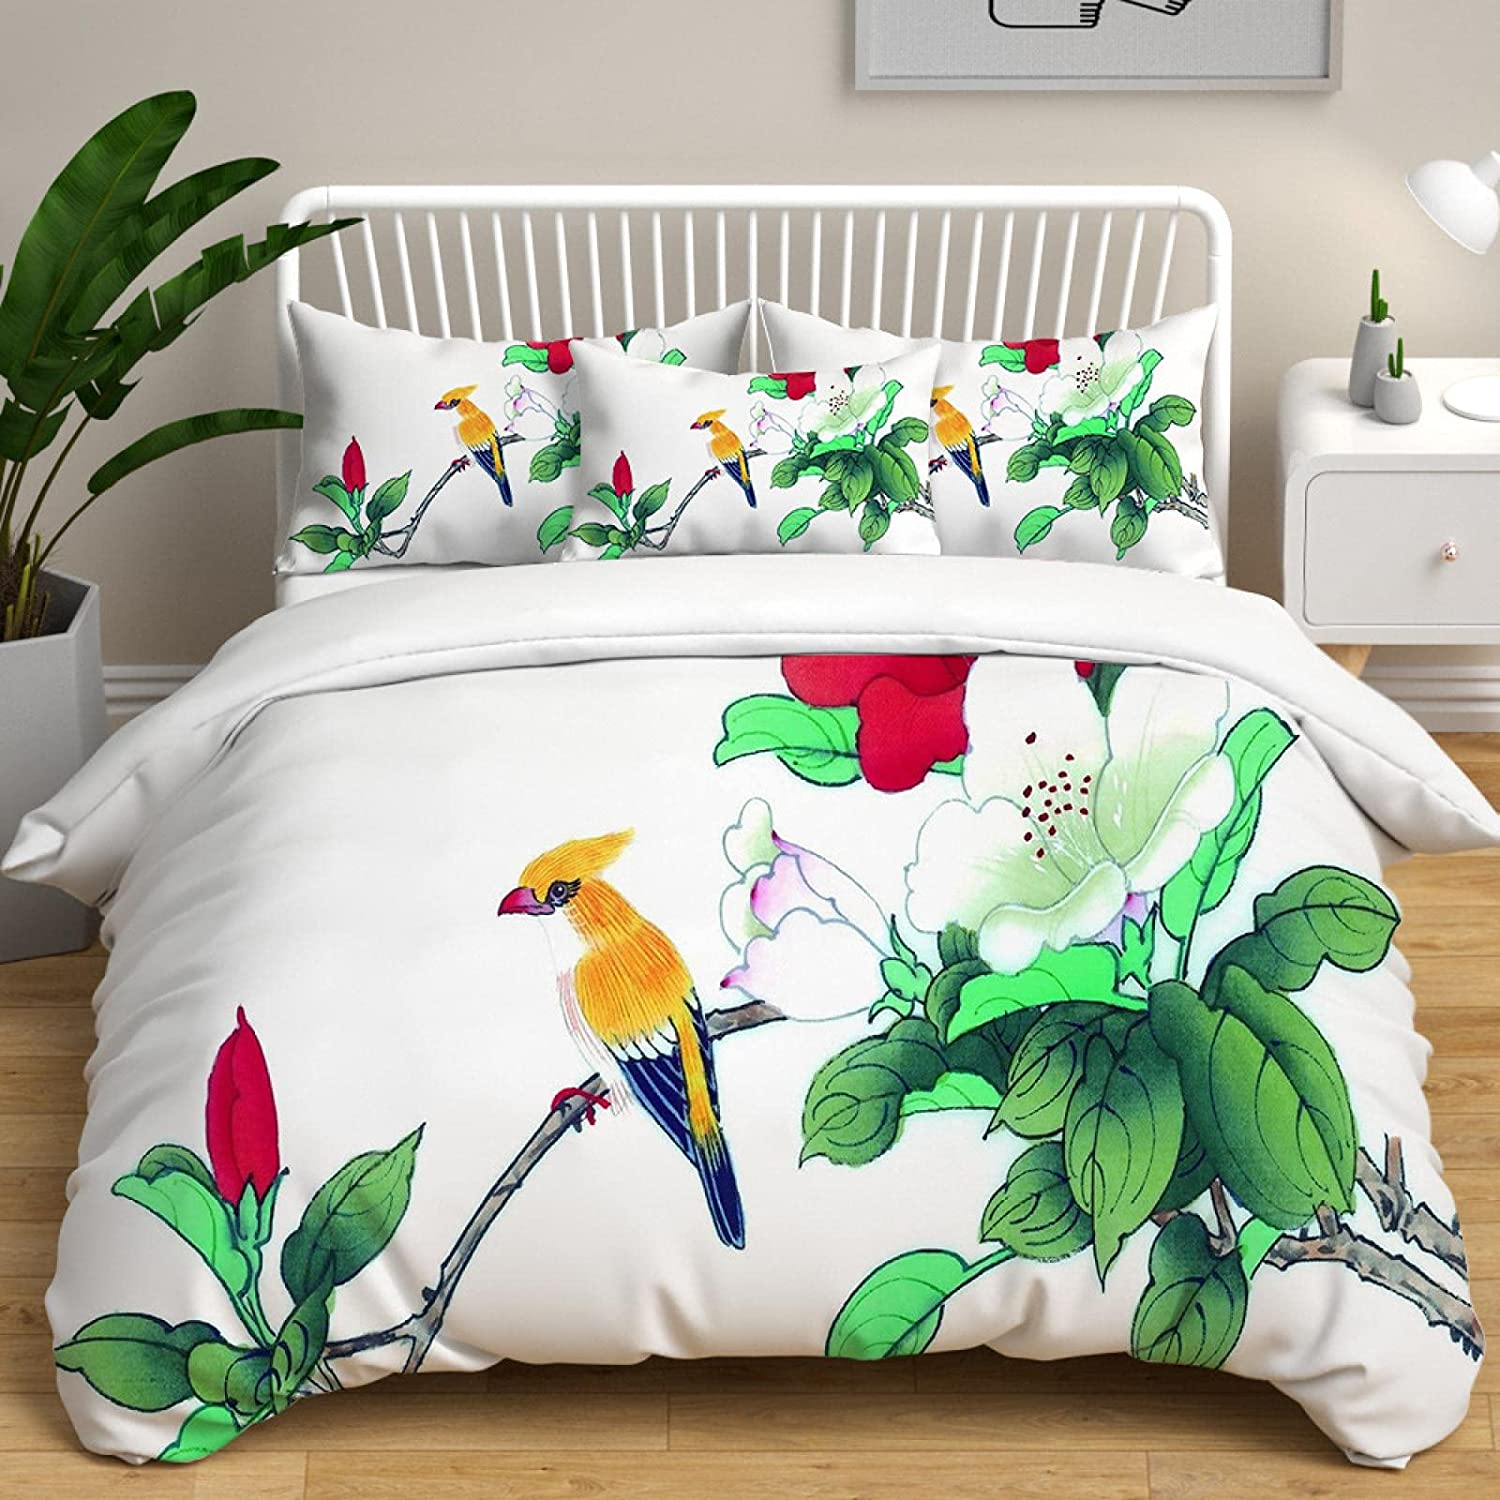 HQHM Duvet trust Cover King 3 Max 86% OFF Pieces Animals Flowers Plants 102X White